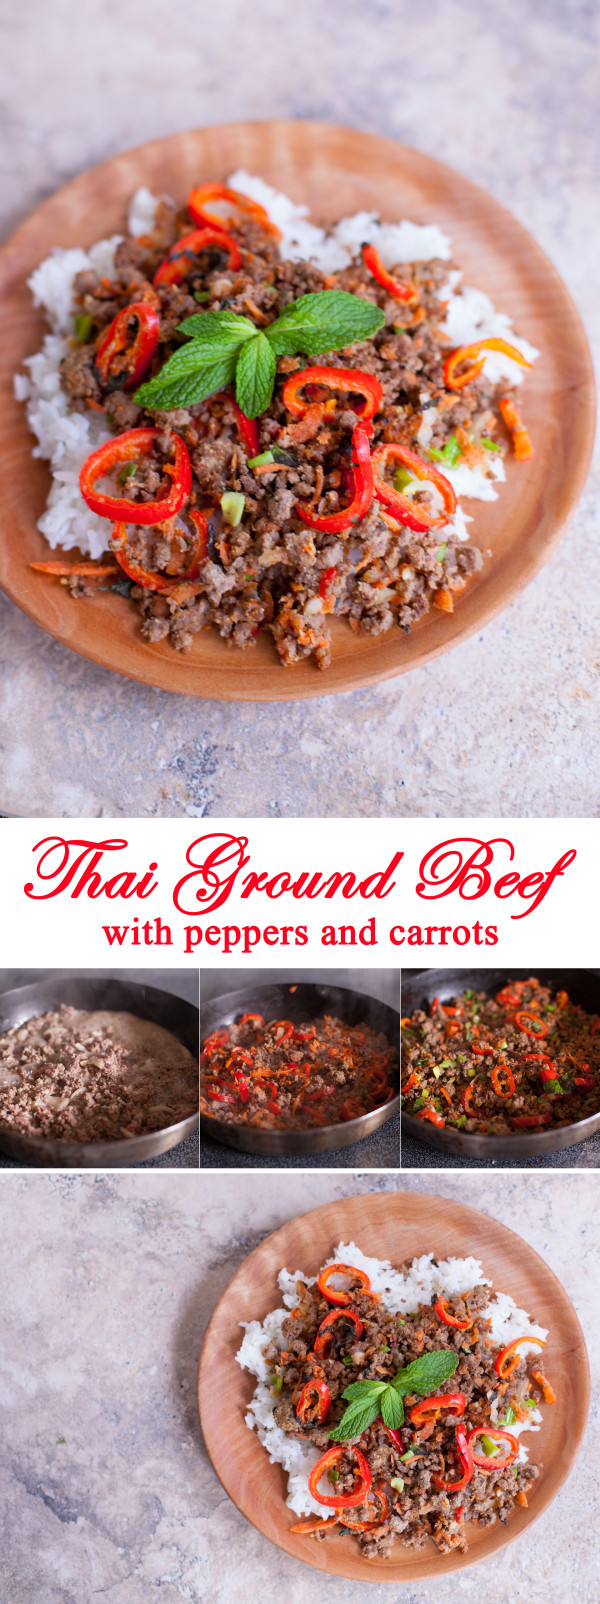 Easy Thai Ground Beef Recipe with Peppers and Carrots - EatingRichly.com